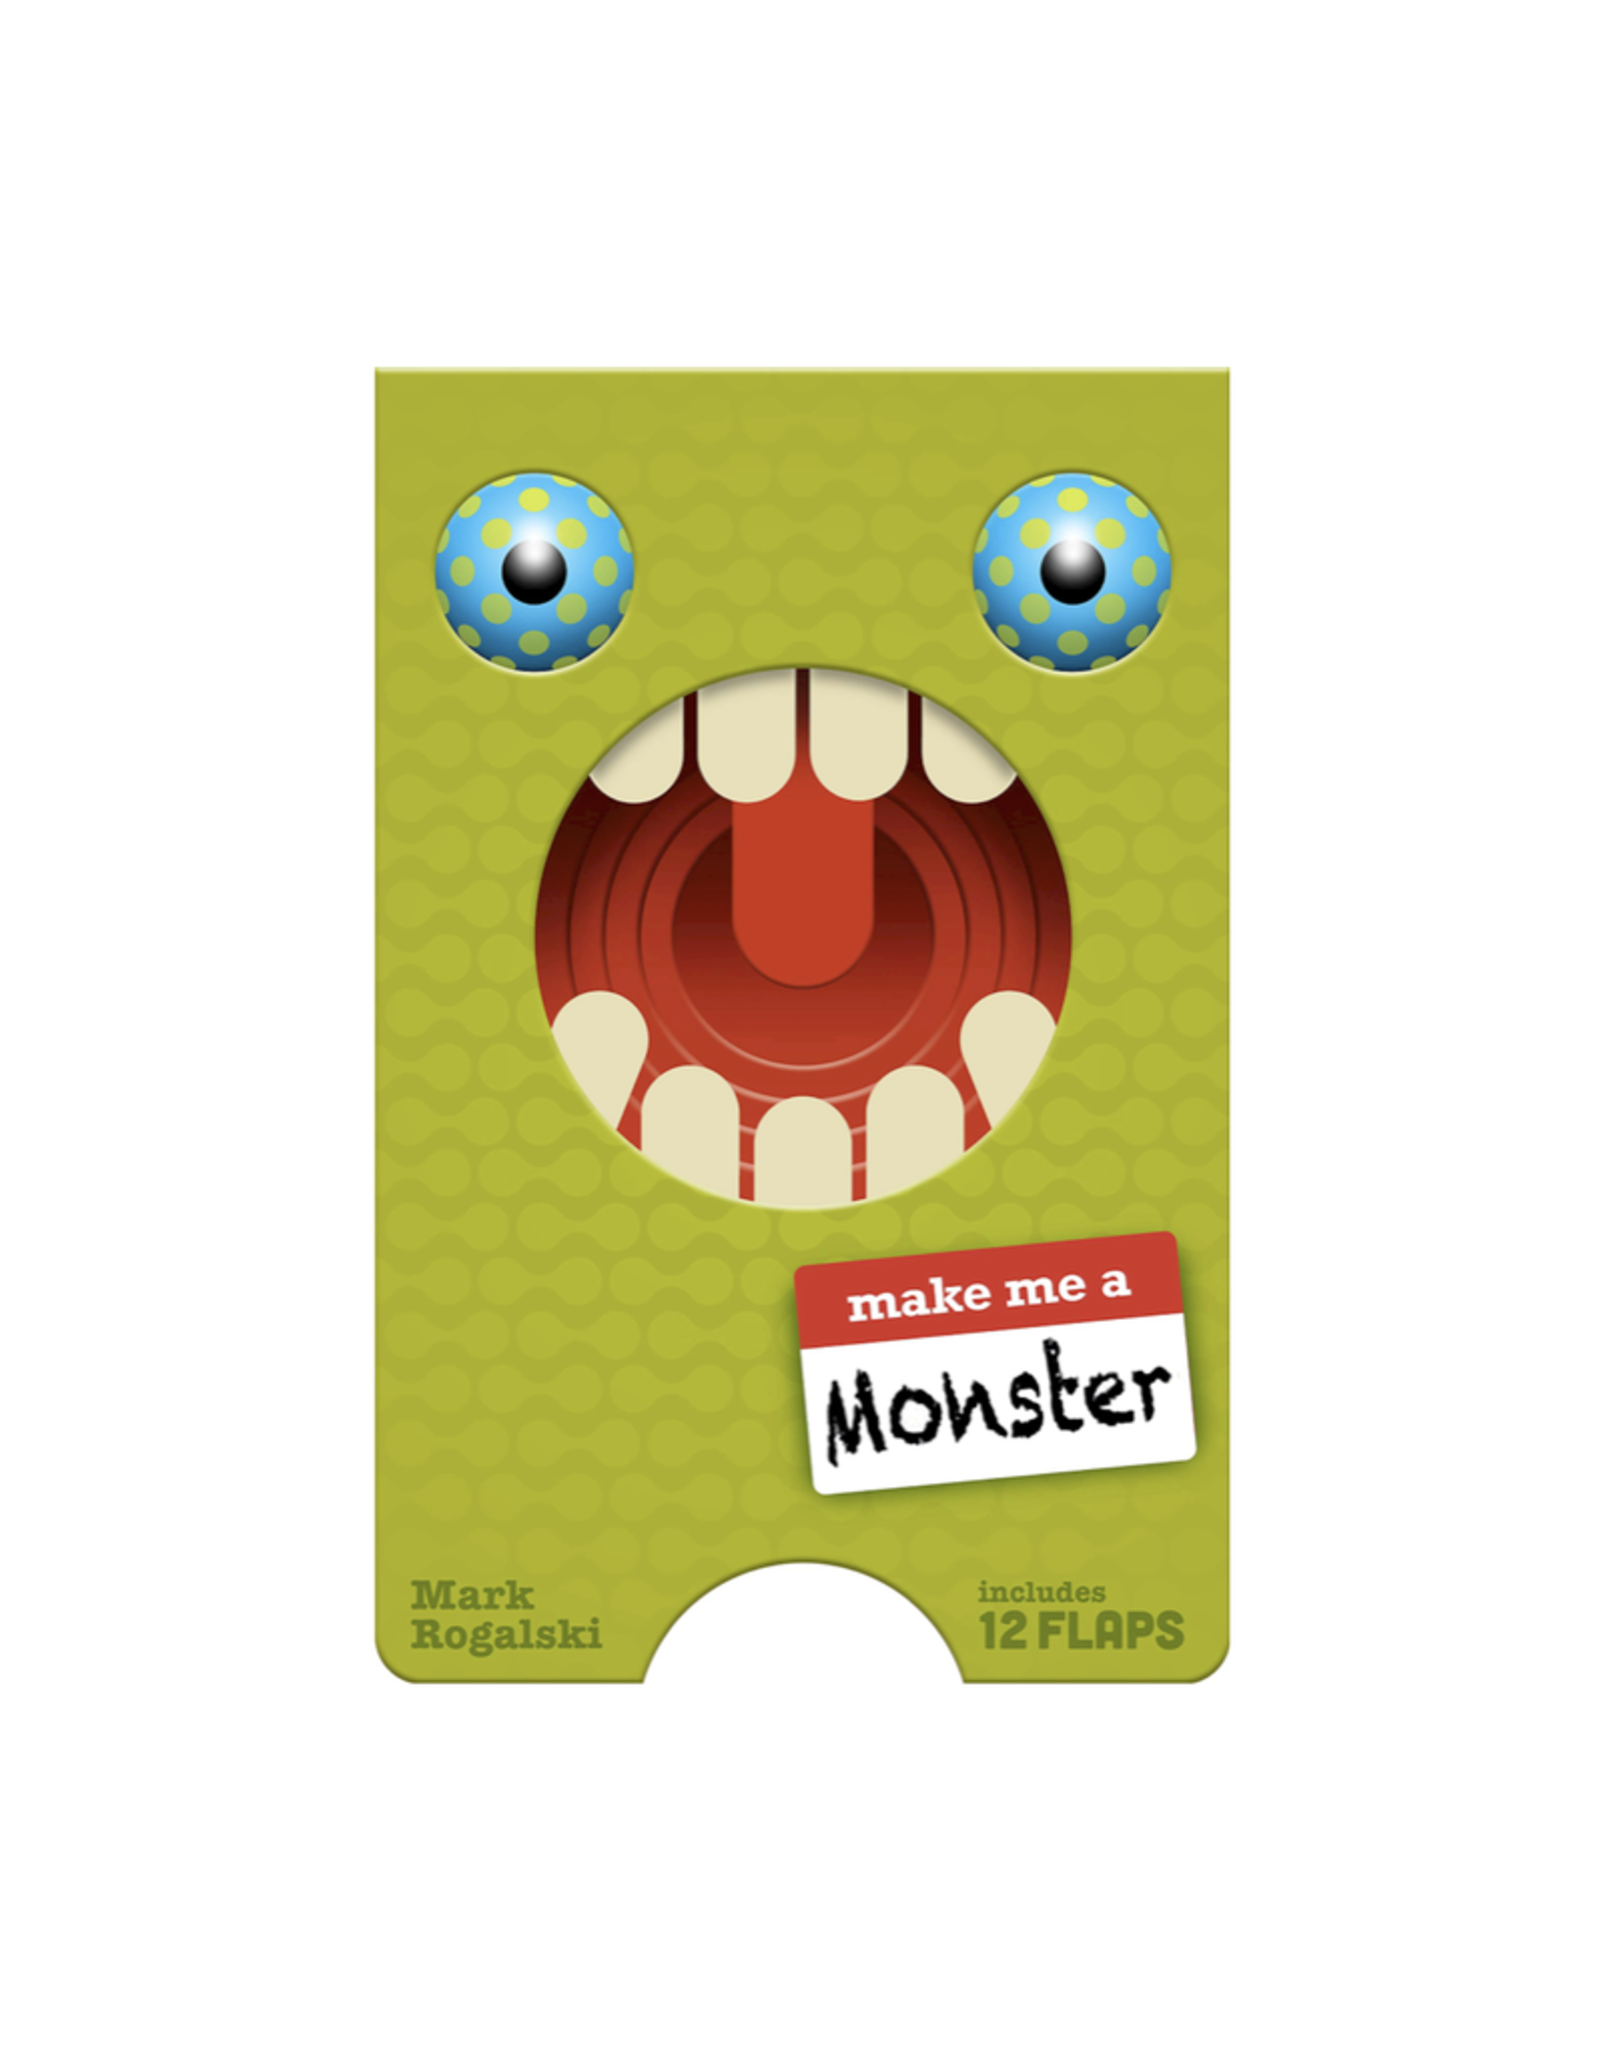 Make me a Monster by: Mark Rogalski